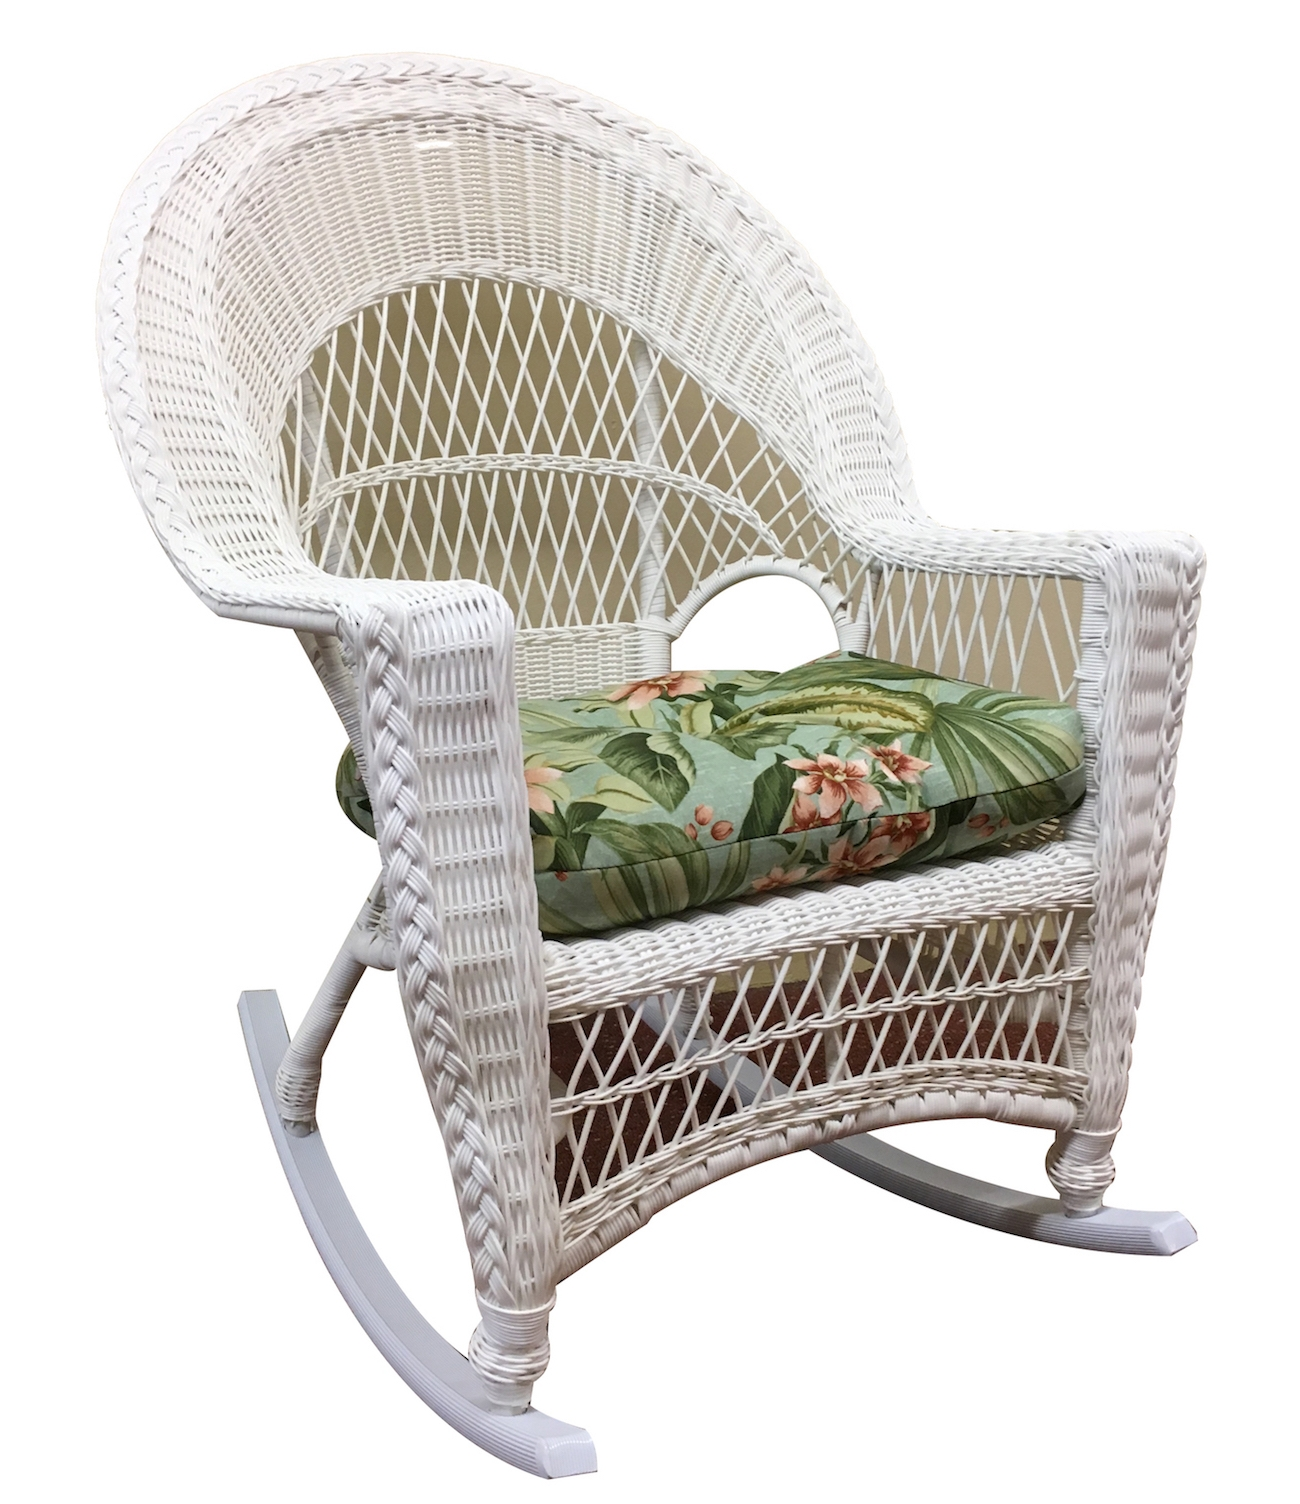 Well Known Resin Wicker Rocking Chairs Intended For Wicker Rocking Chair Design Outdoor Swivel Rockers Black Agreeable (View 17 of 20)